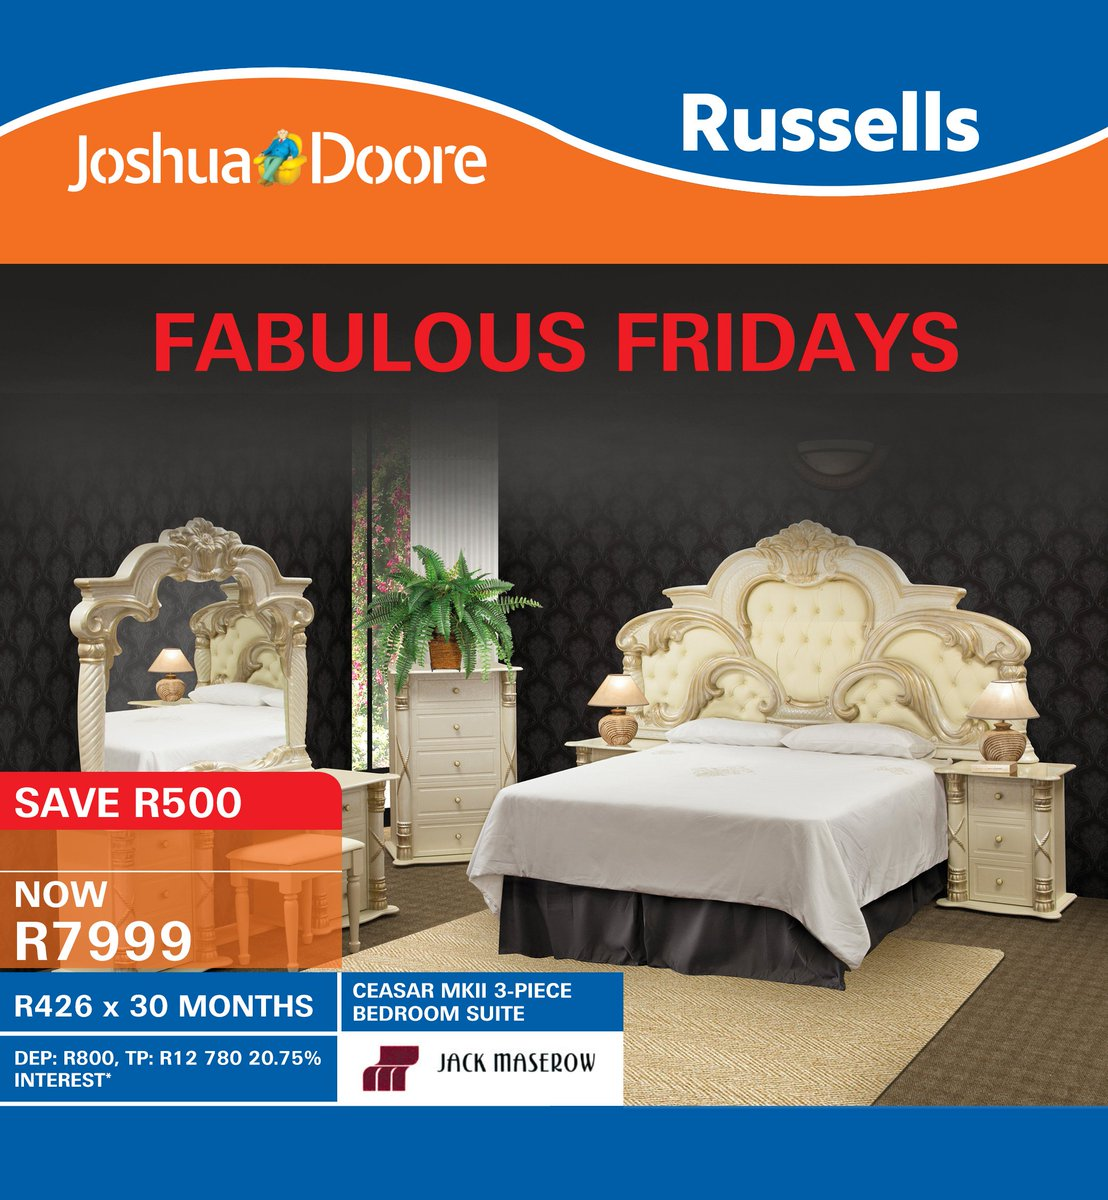 Joshua Doore on Twitter  Our Fabulous CAESAR 3-PIECE BEDROOM SUITE only at Joshua Doore u0026 Russells! More deals here //t.co/gDW3M0ufPS ...  sc 1 st  Twitter & Joshua Doore on Twitter: